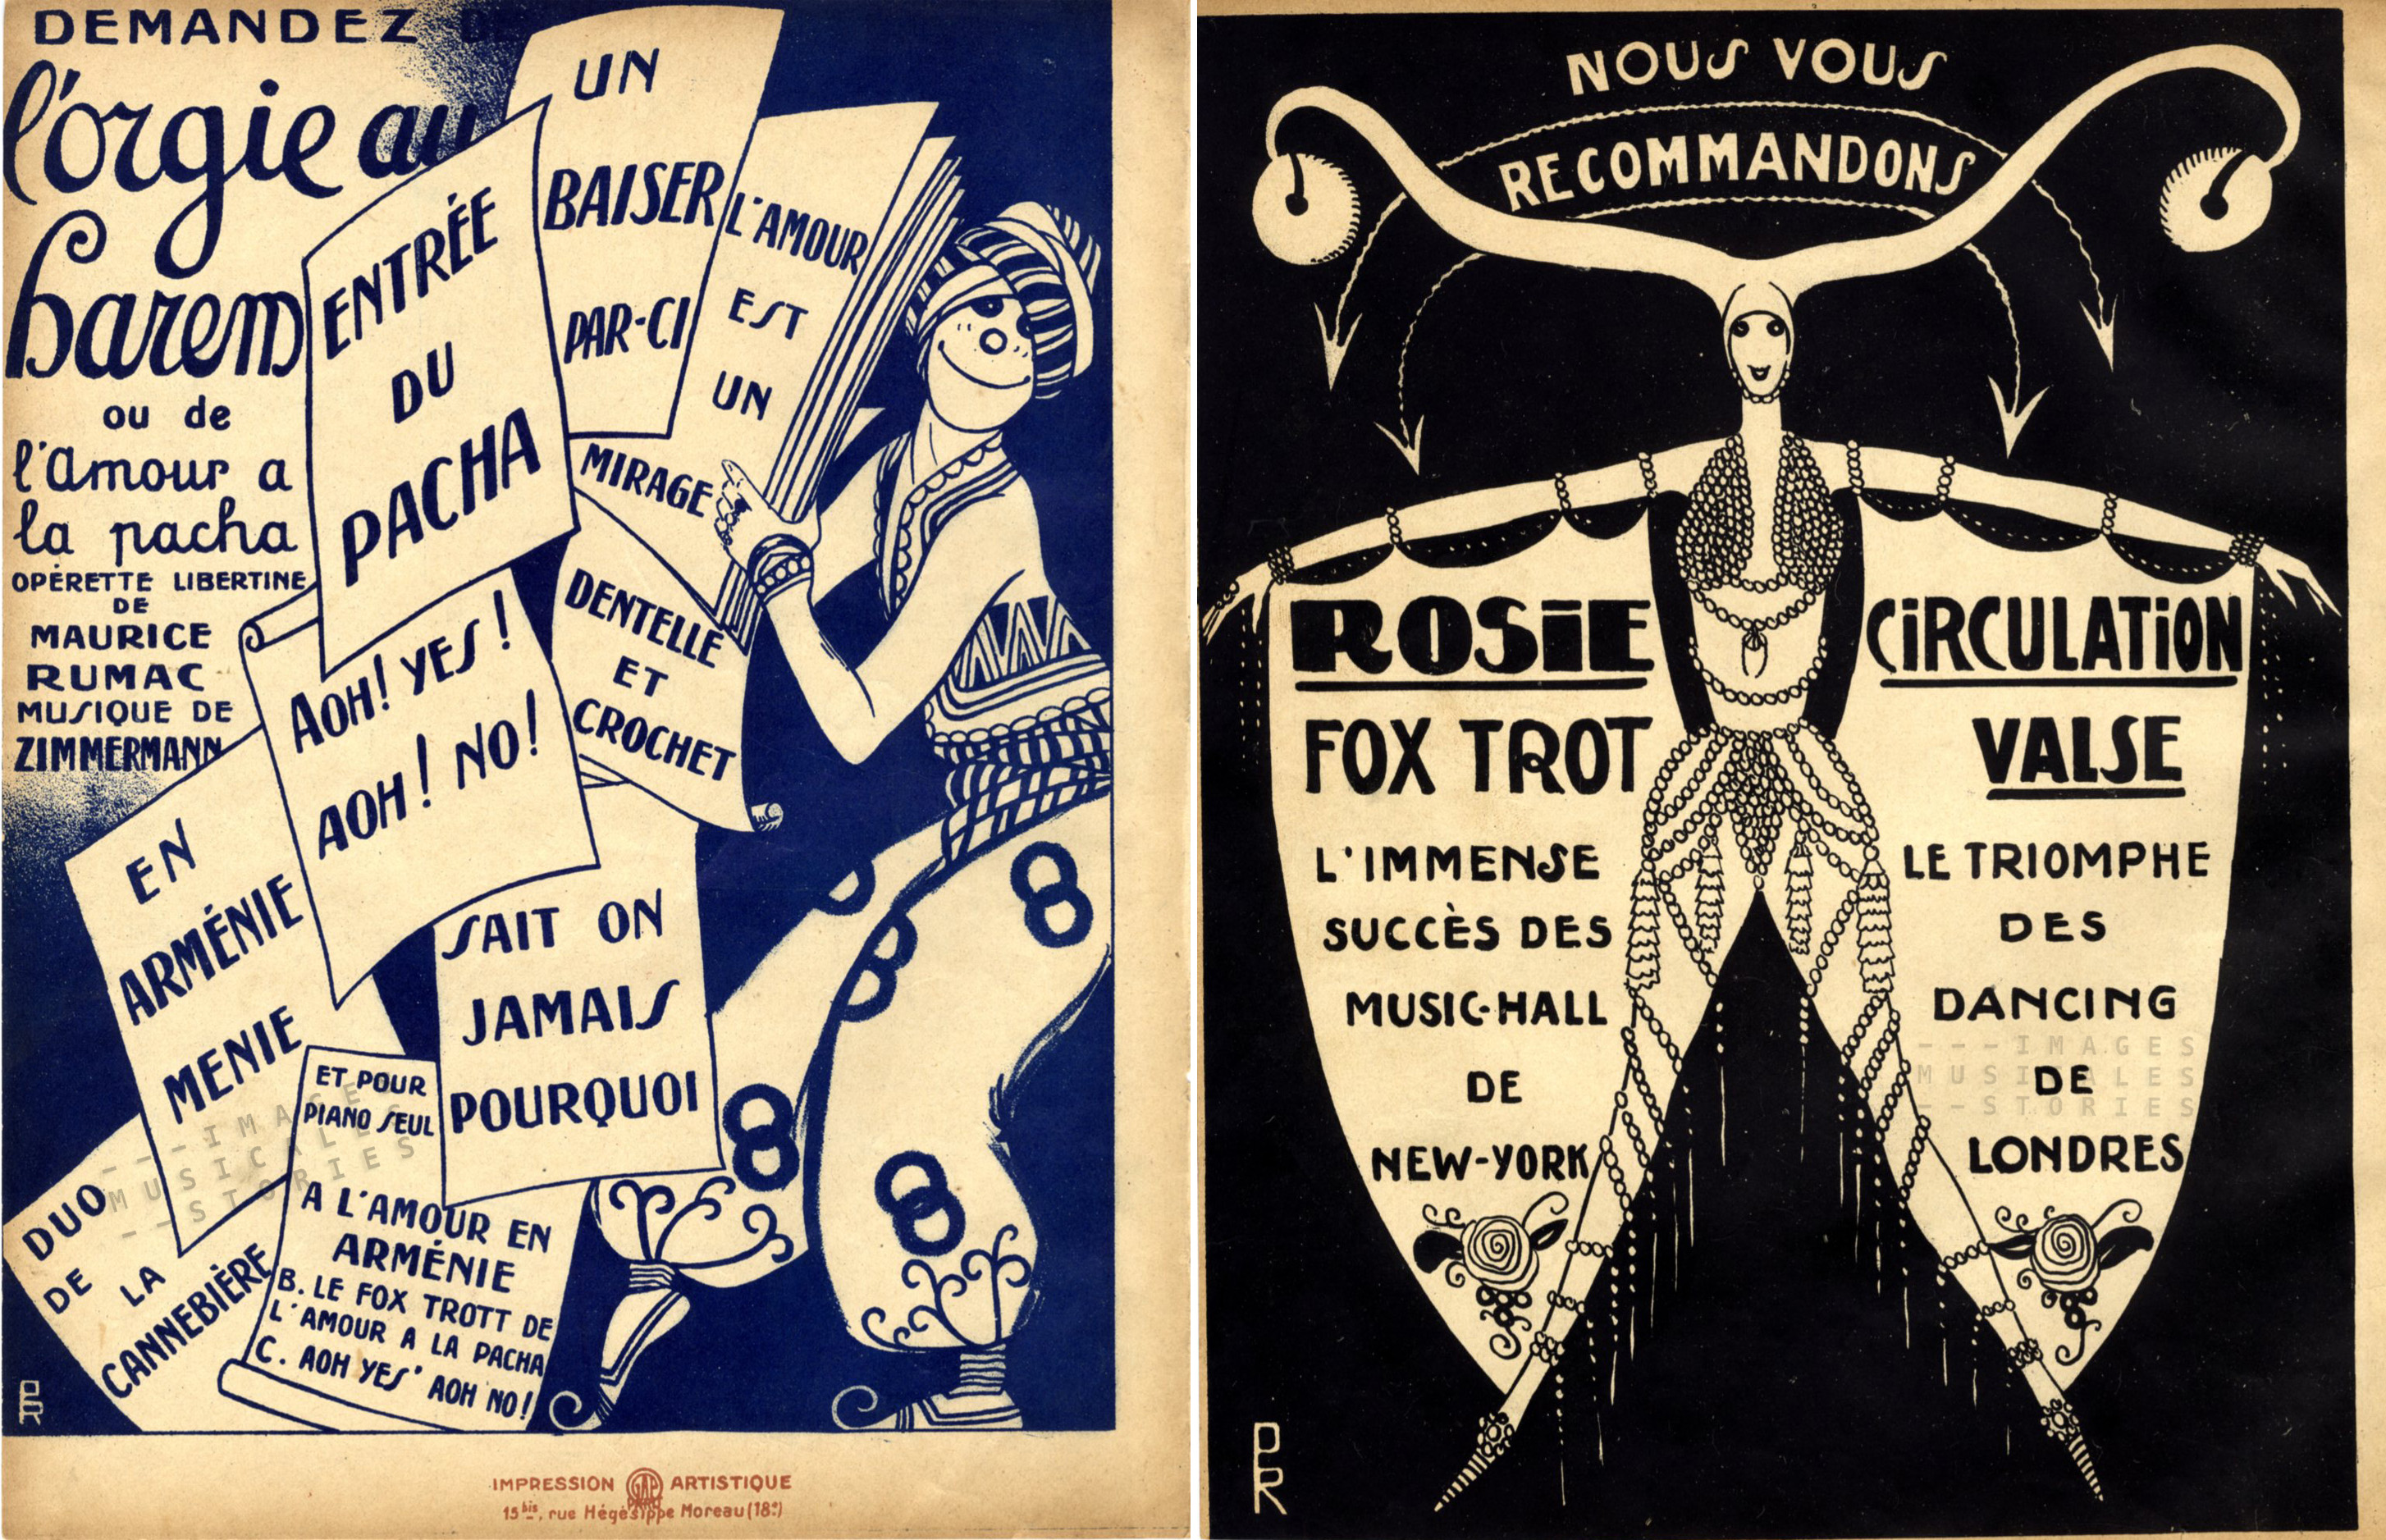 Two back covers illustrated by cartoonist Pol Rab, for publishers Pêle-Mêle (left) and Maillochon (right).